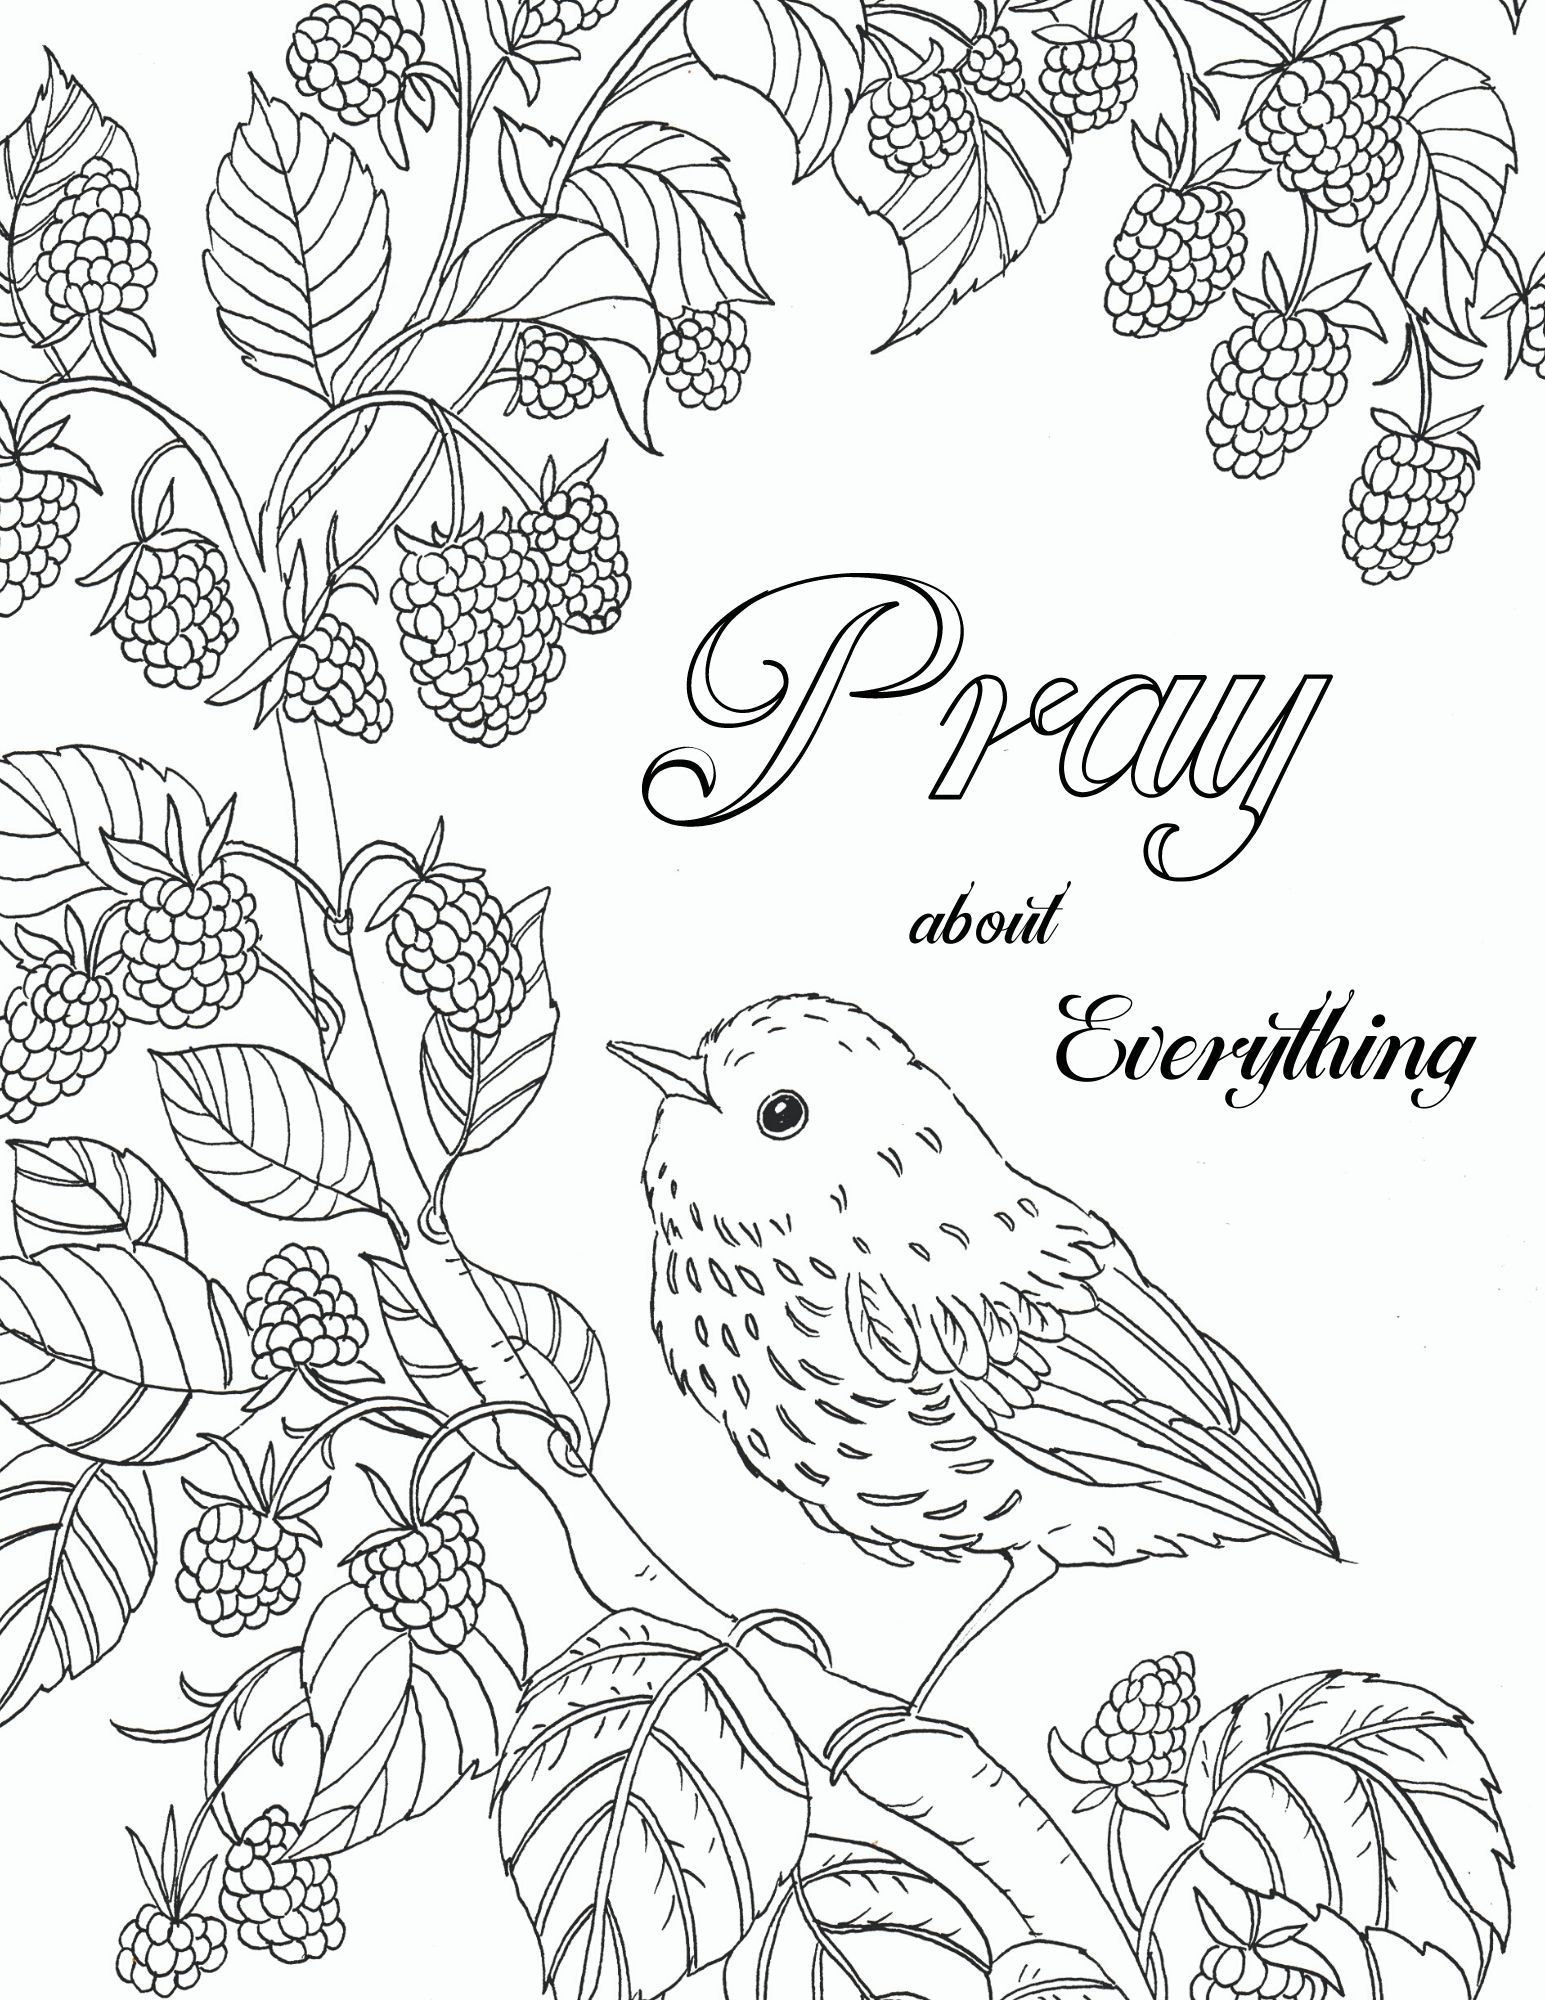 Printables Library Coloring Pages Bible Verse Coloring Page Bible Verse Coloring Bible Coloring Pages [ 2000 x 1545 Pixel ]